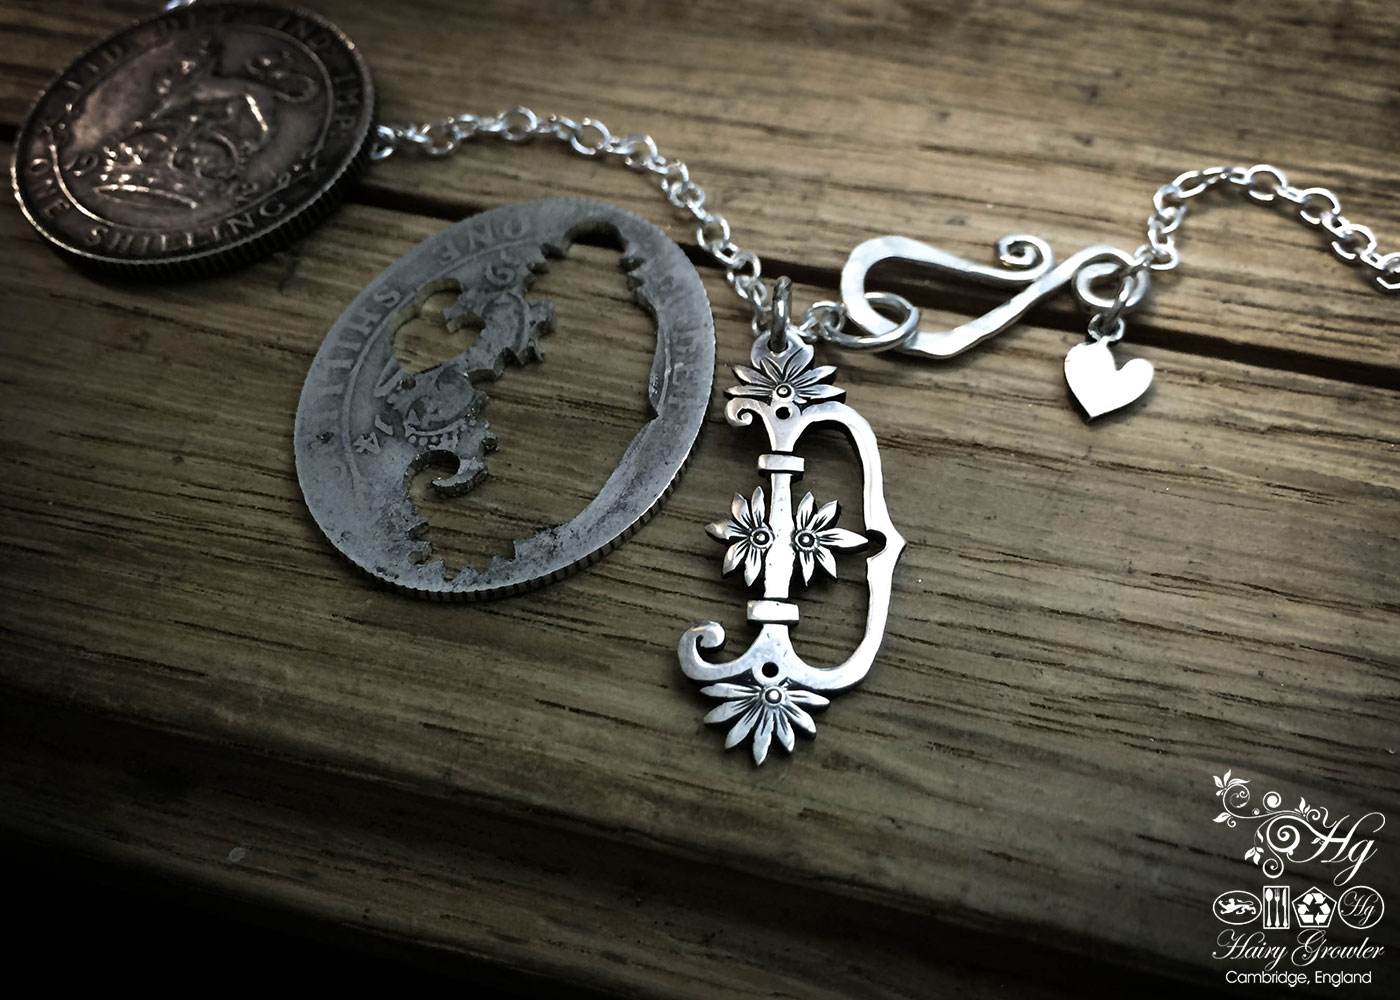 Handcrafted and recycled silver shilling personal flower initial coin necklace pendant